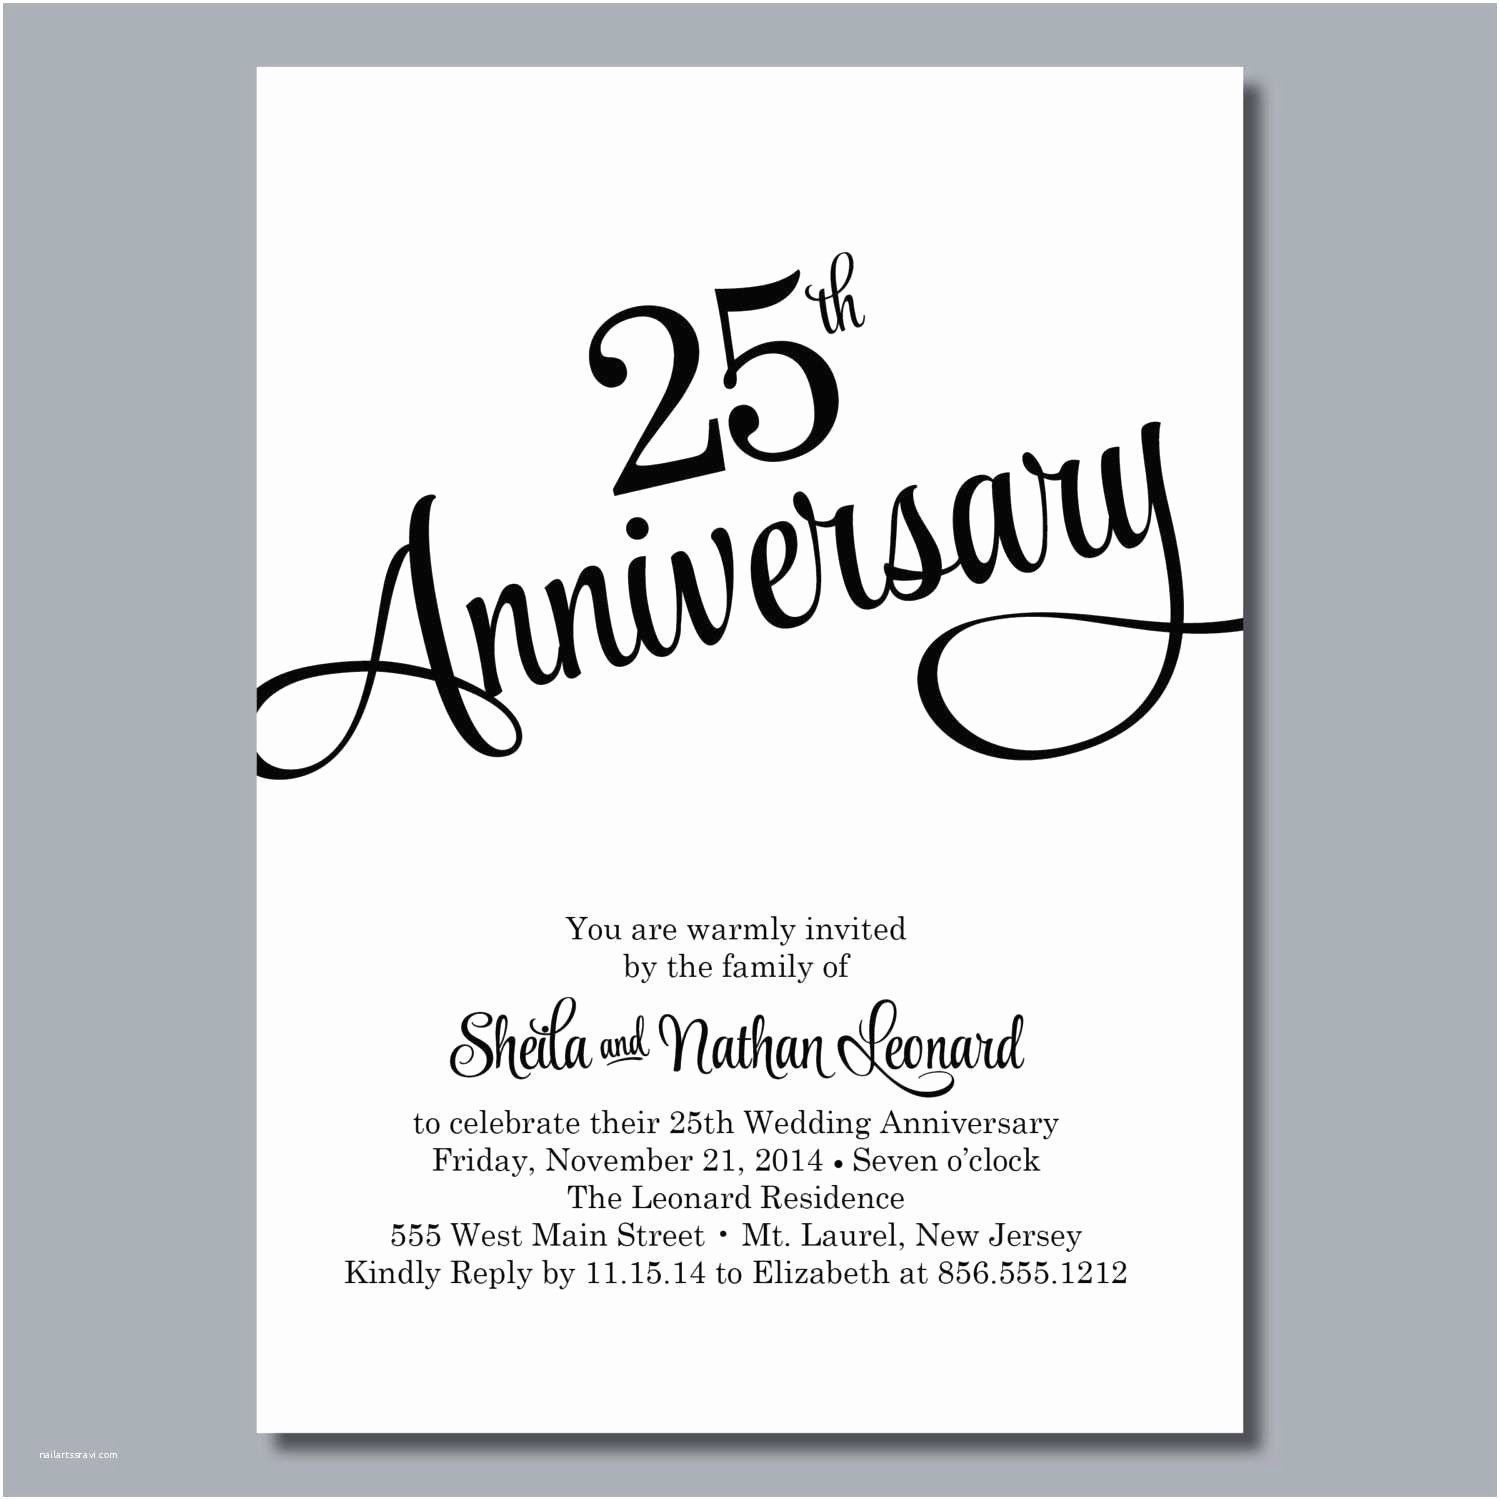 Latest Photographs Parents Anniversary Card Luxury In 25th Wedding Anniversary Invitations 50th Wedding Anniversary Invitations Wedding Anniversary Invitations